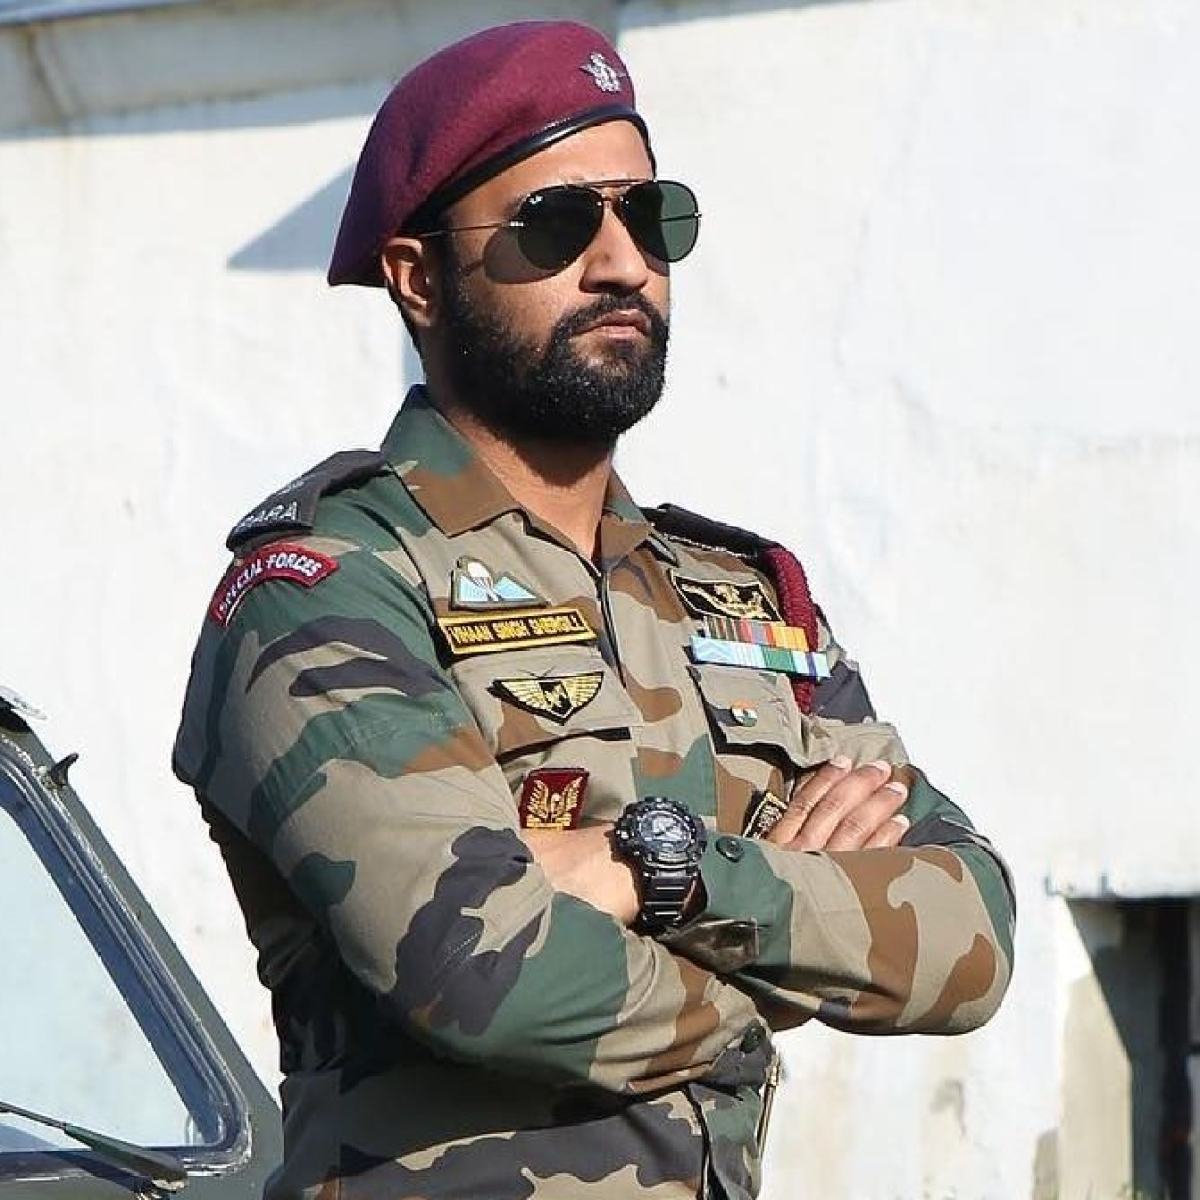 Vicky Kaushal Birthday Special: From 'Masaan' to 'Uri' - best performances